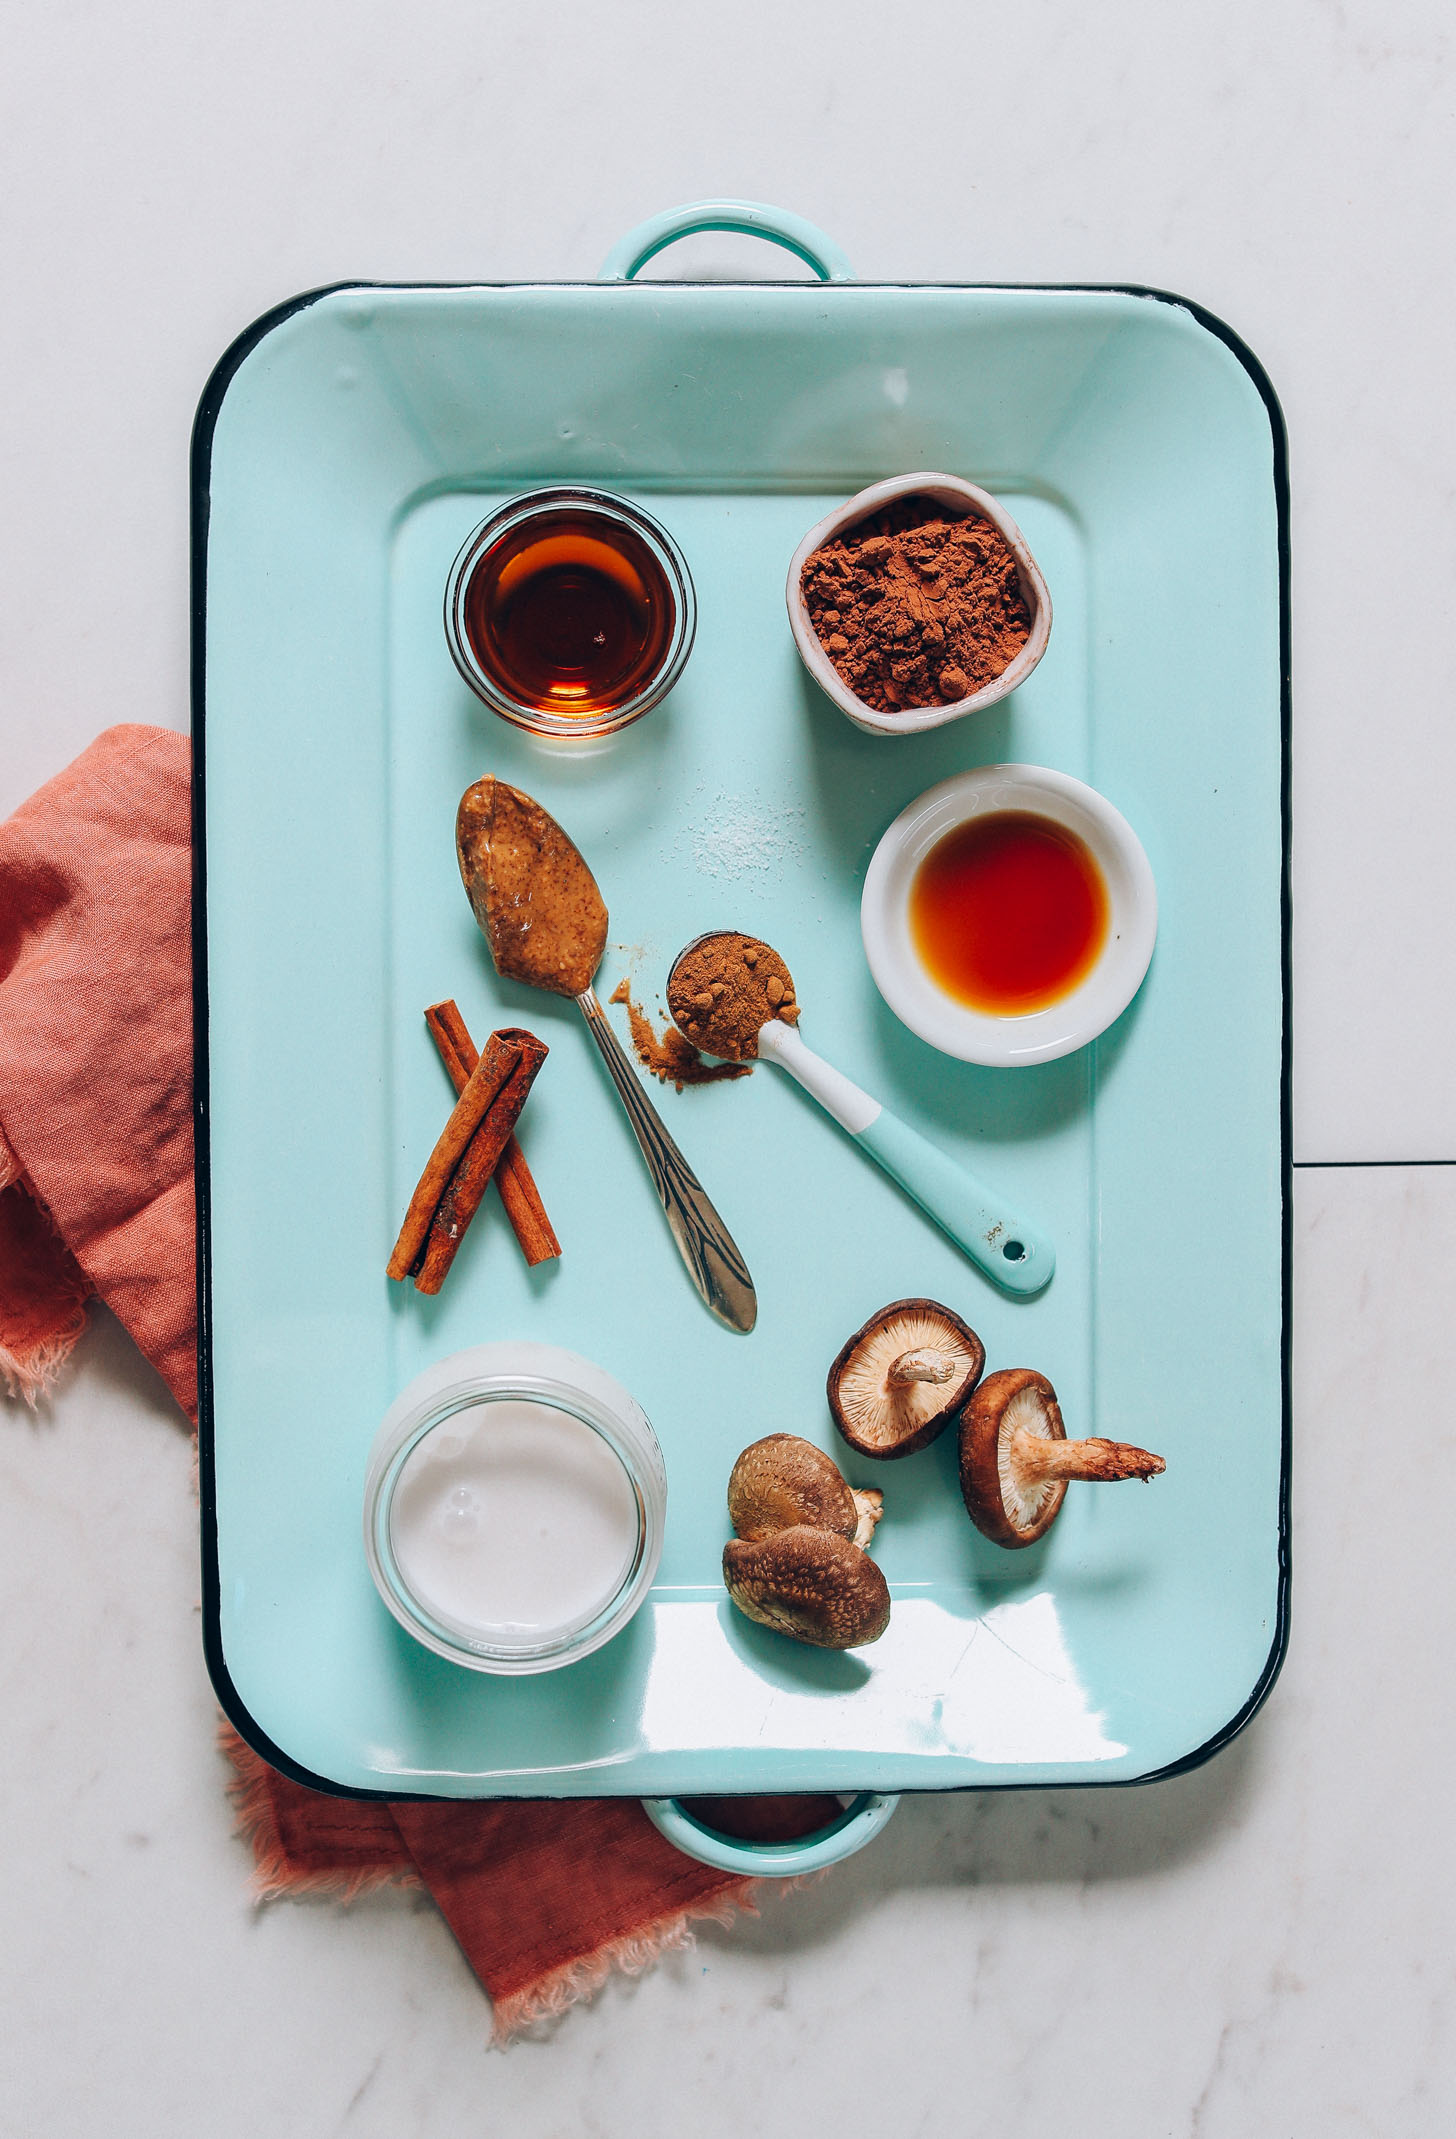 Overhead image of blue tray holding ingredients for mushroom hot cacao latte including mushroom powder, maple syrup, cinnamon, and coconut milk